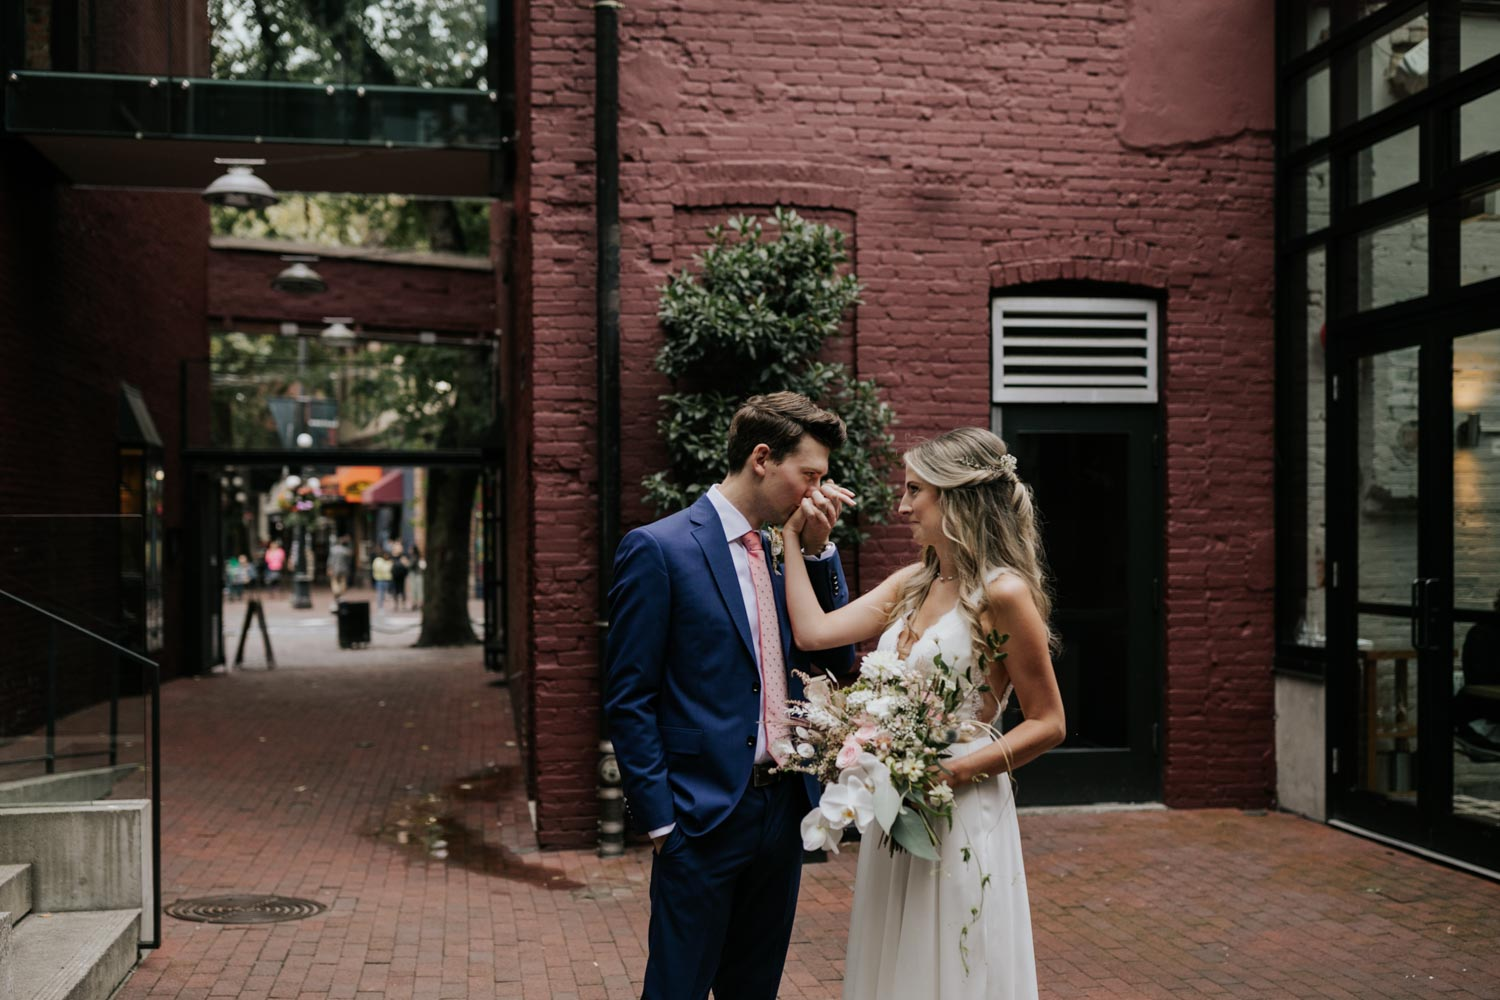 Groom kisses bride's hand in wedding photoshoot on the city streets of Gastown in Vancouver